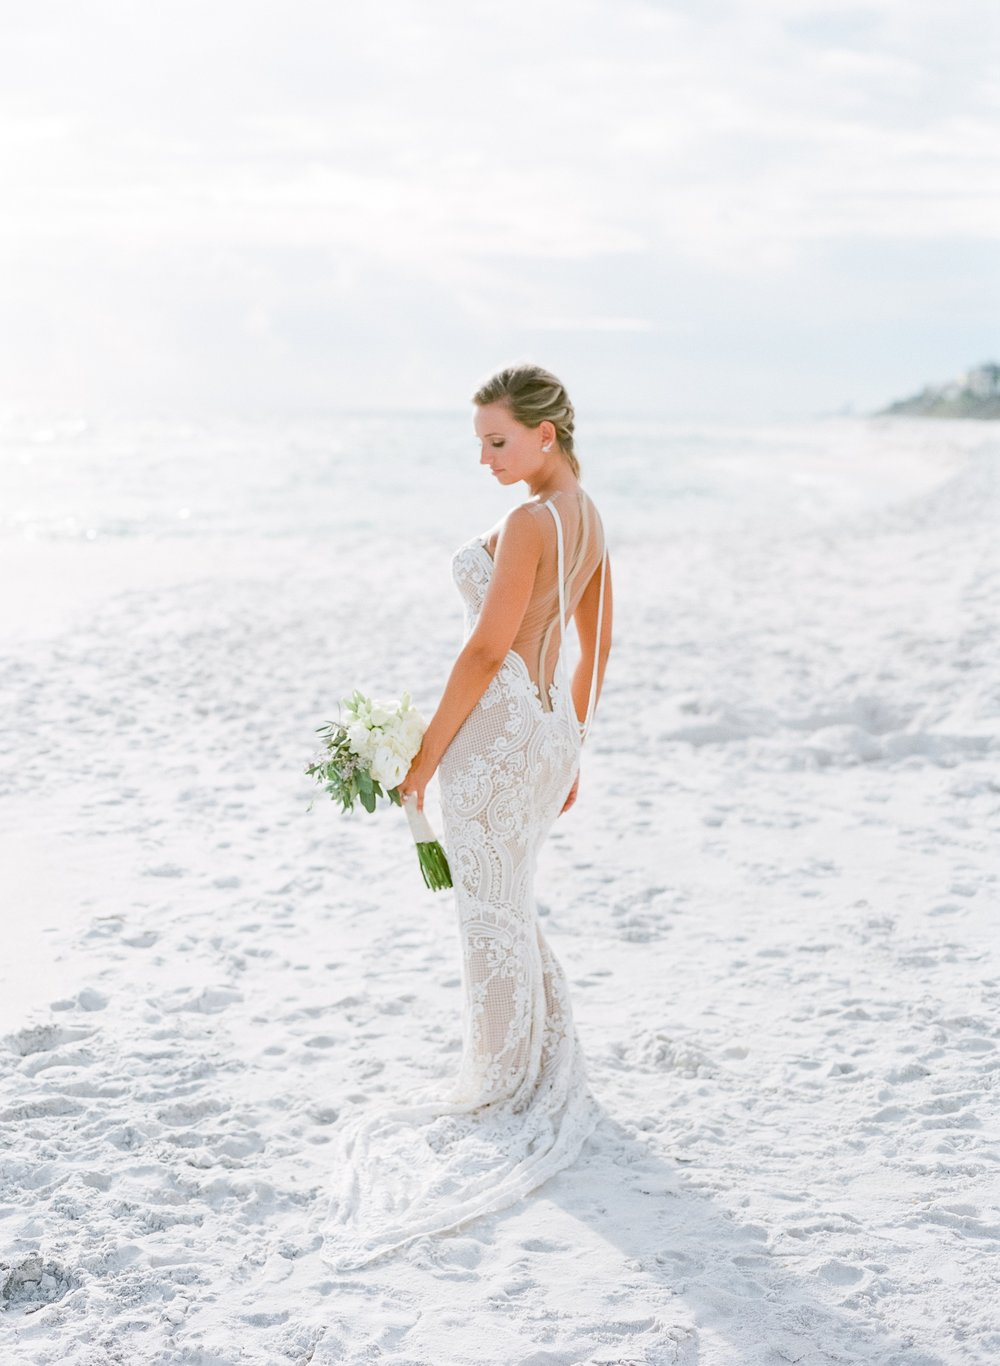 Jessie Barksdale Photography_berta wedding dress_best destination wedding photographer florida